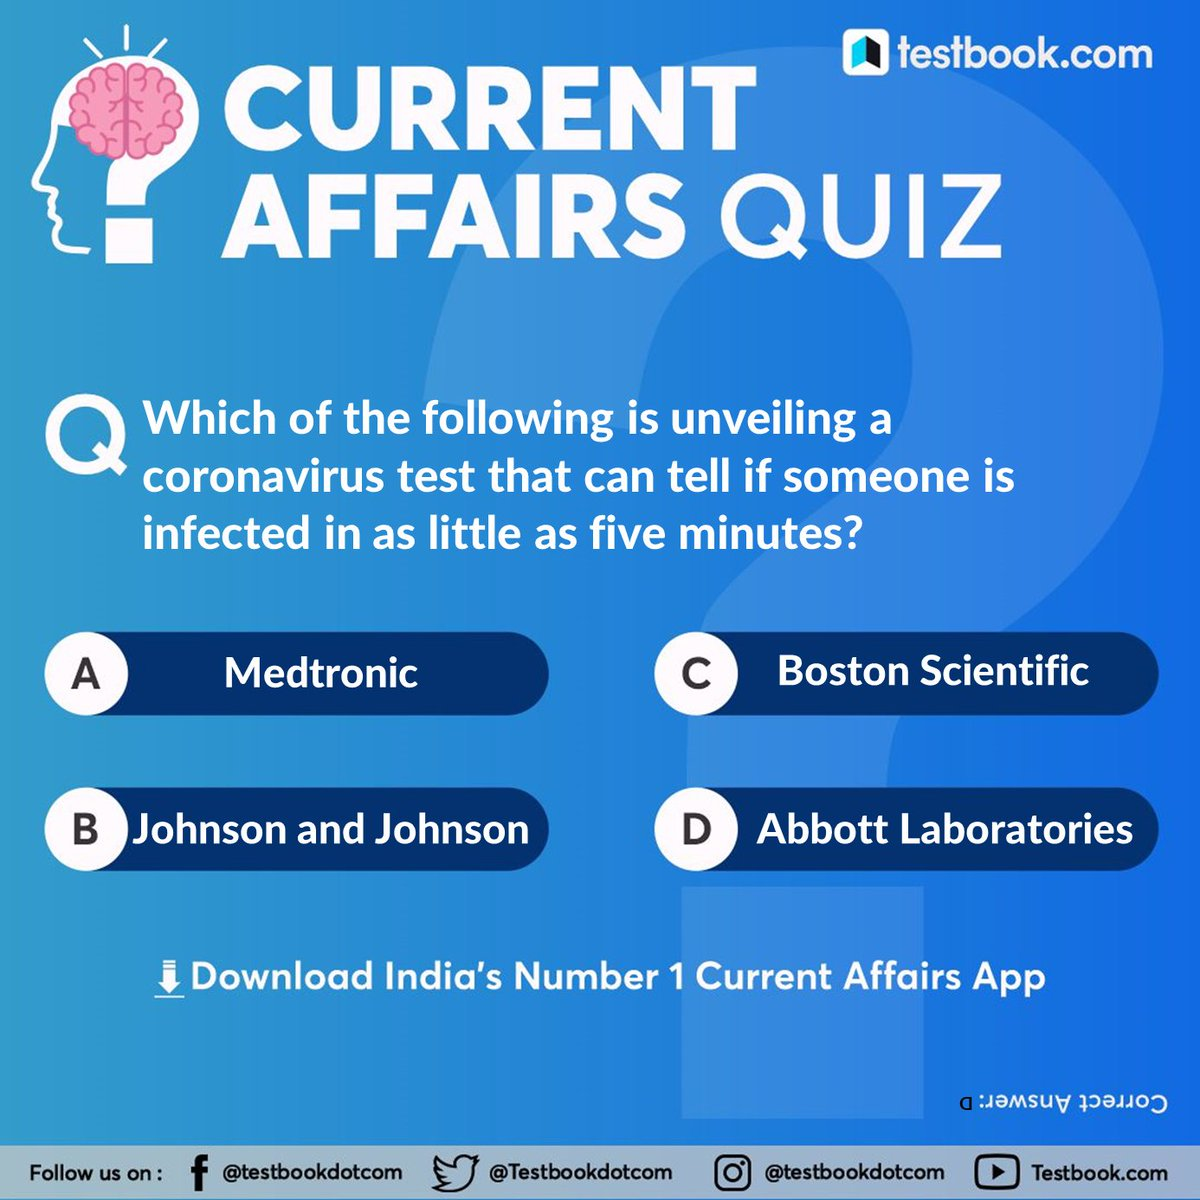 Comment the correct option!! #Quiz #CurrentAffairs #CurrentAffairsQuiz #QuestionOfTheDay #DailyQuiz #QuizTime #gkpic.twitter.com/WG0q509Mdw